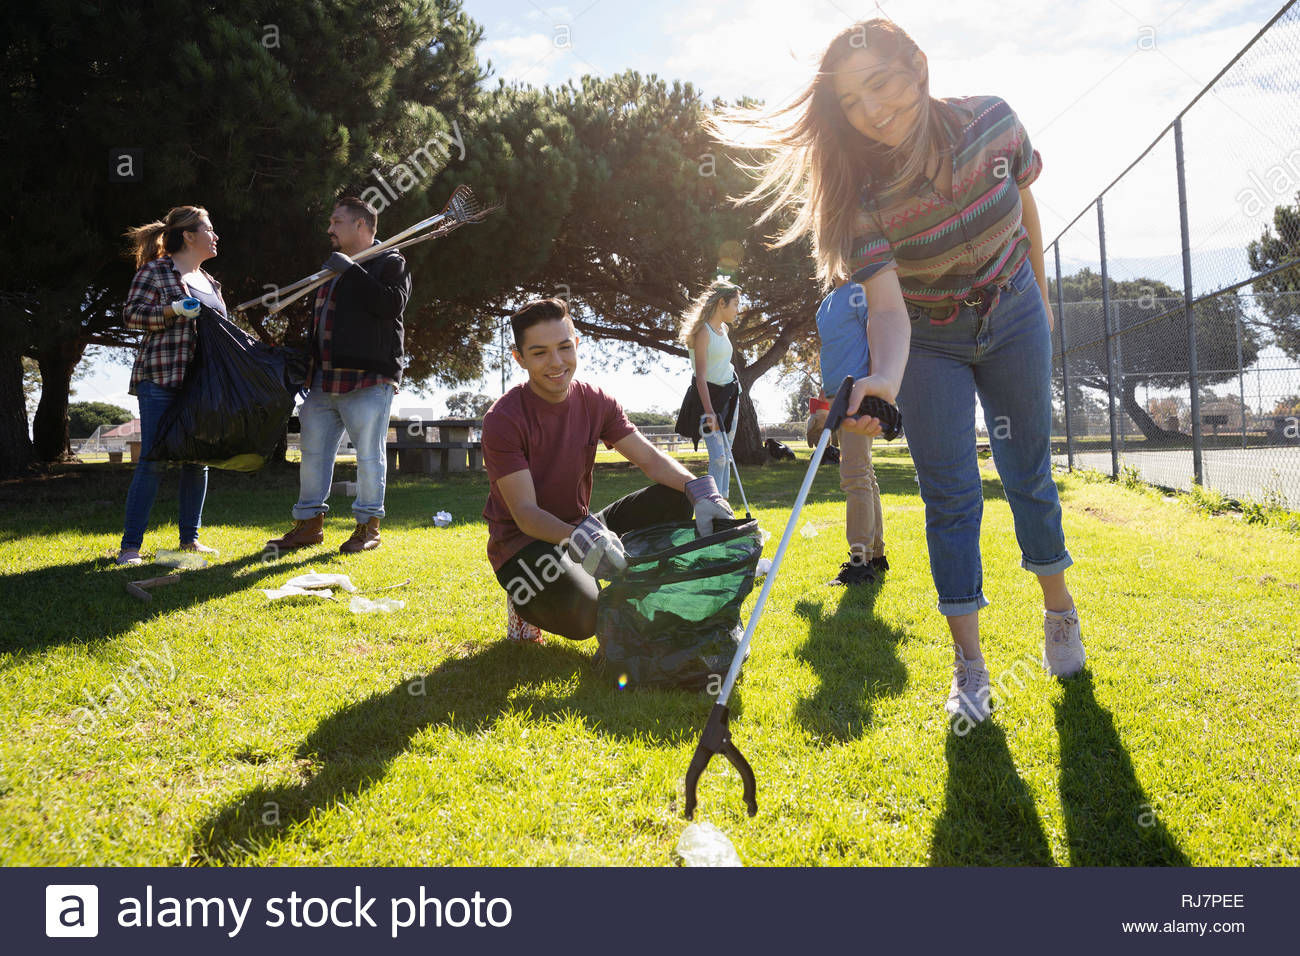 Volunteers picking up garbage in sunny park Stock Photo